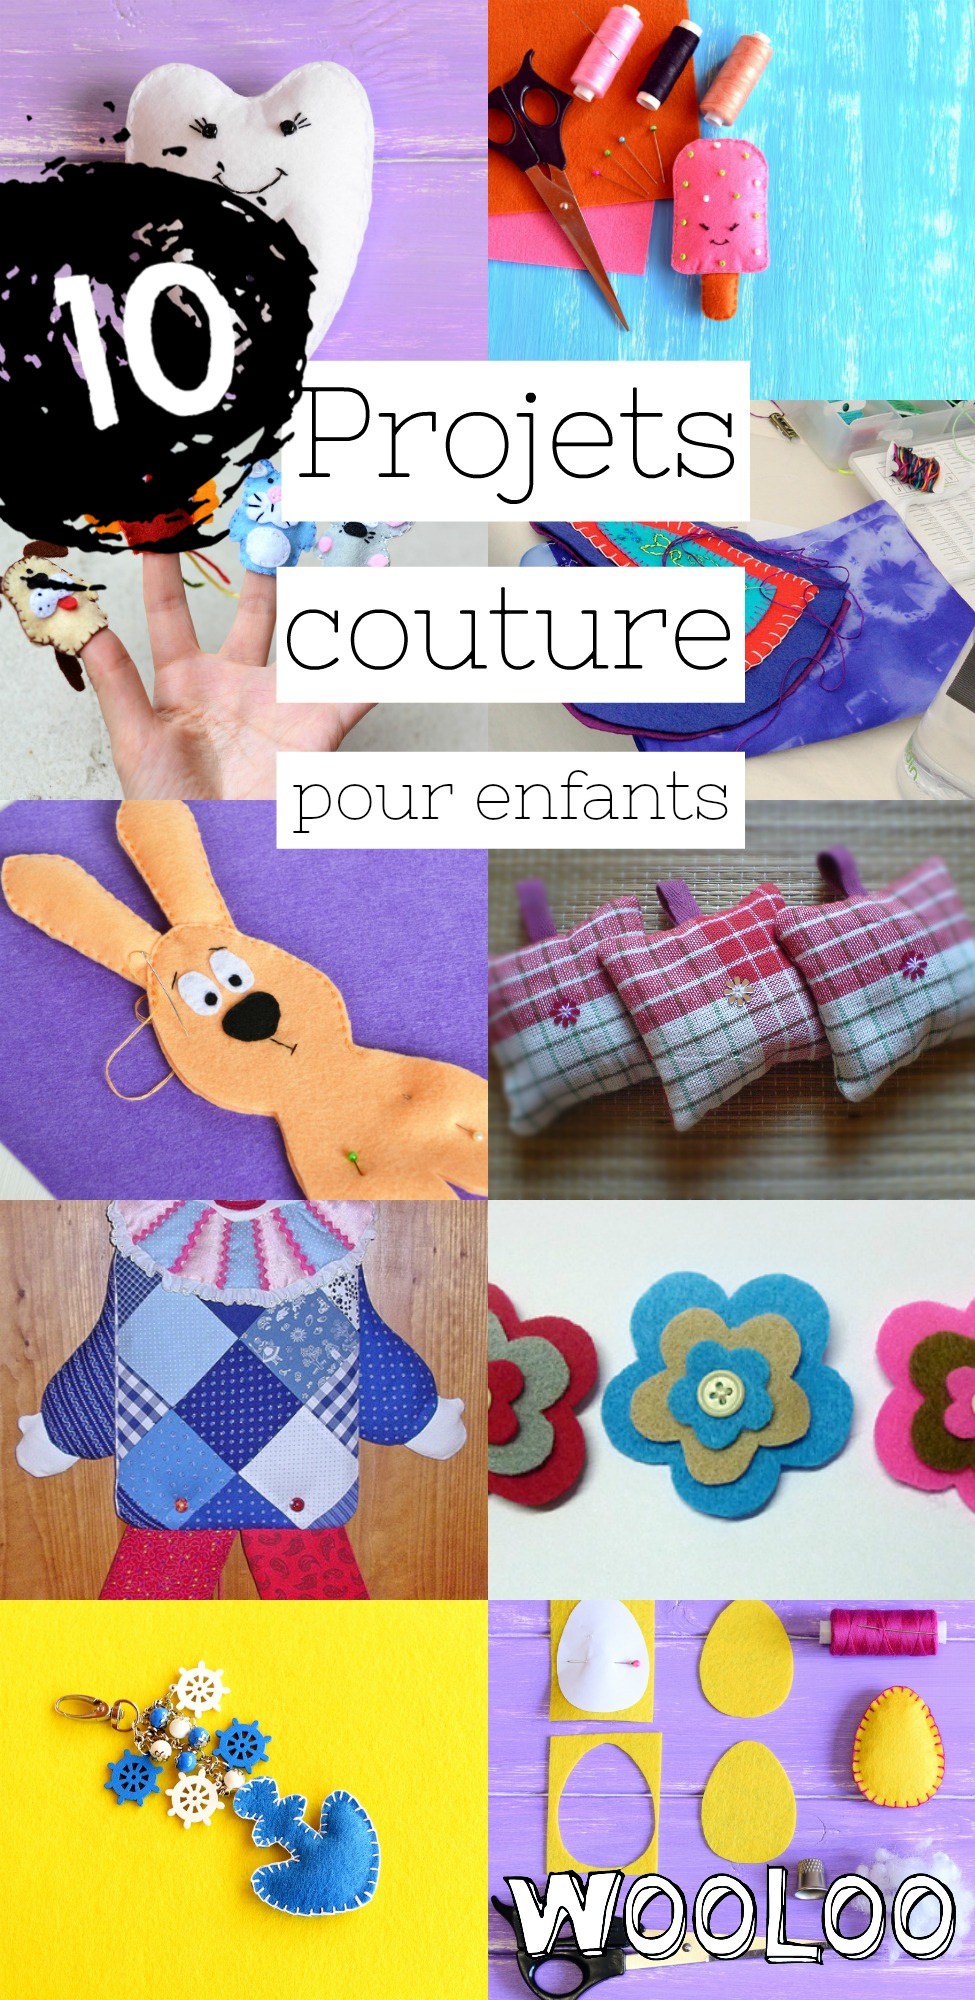 projets_couture_enfants_wooloo